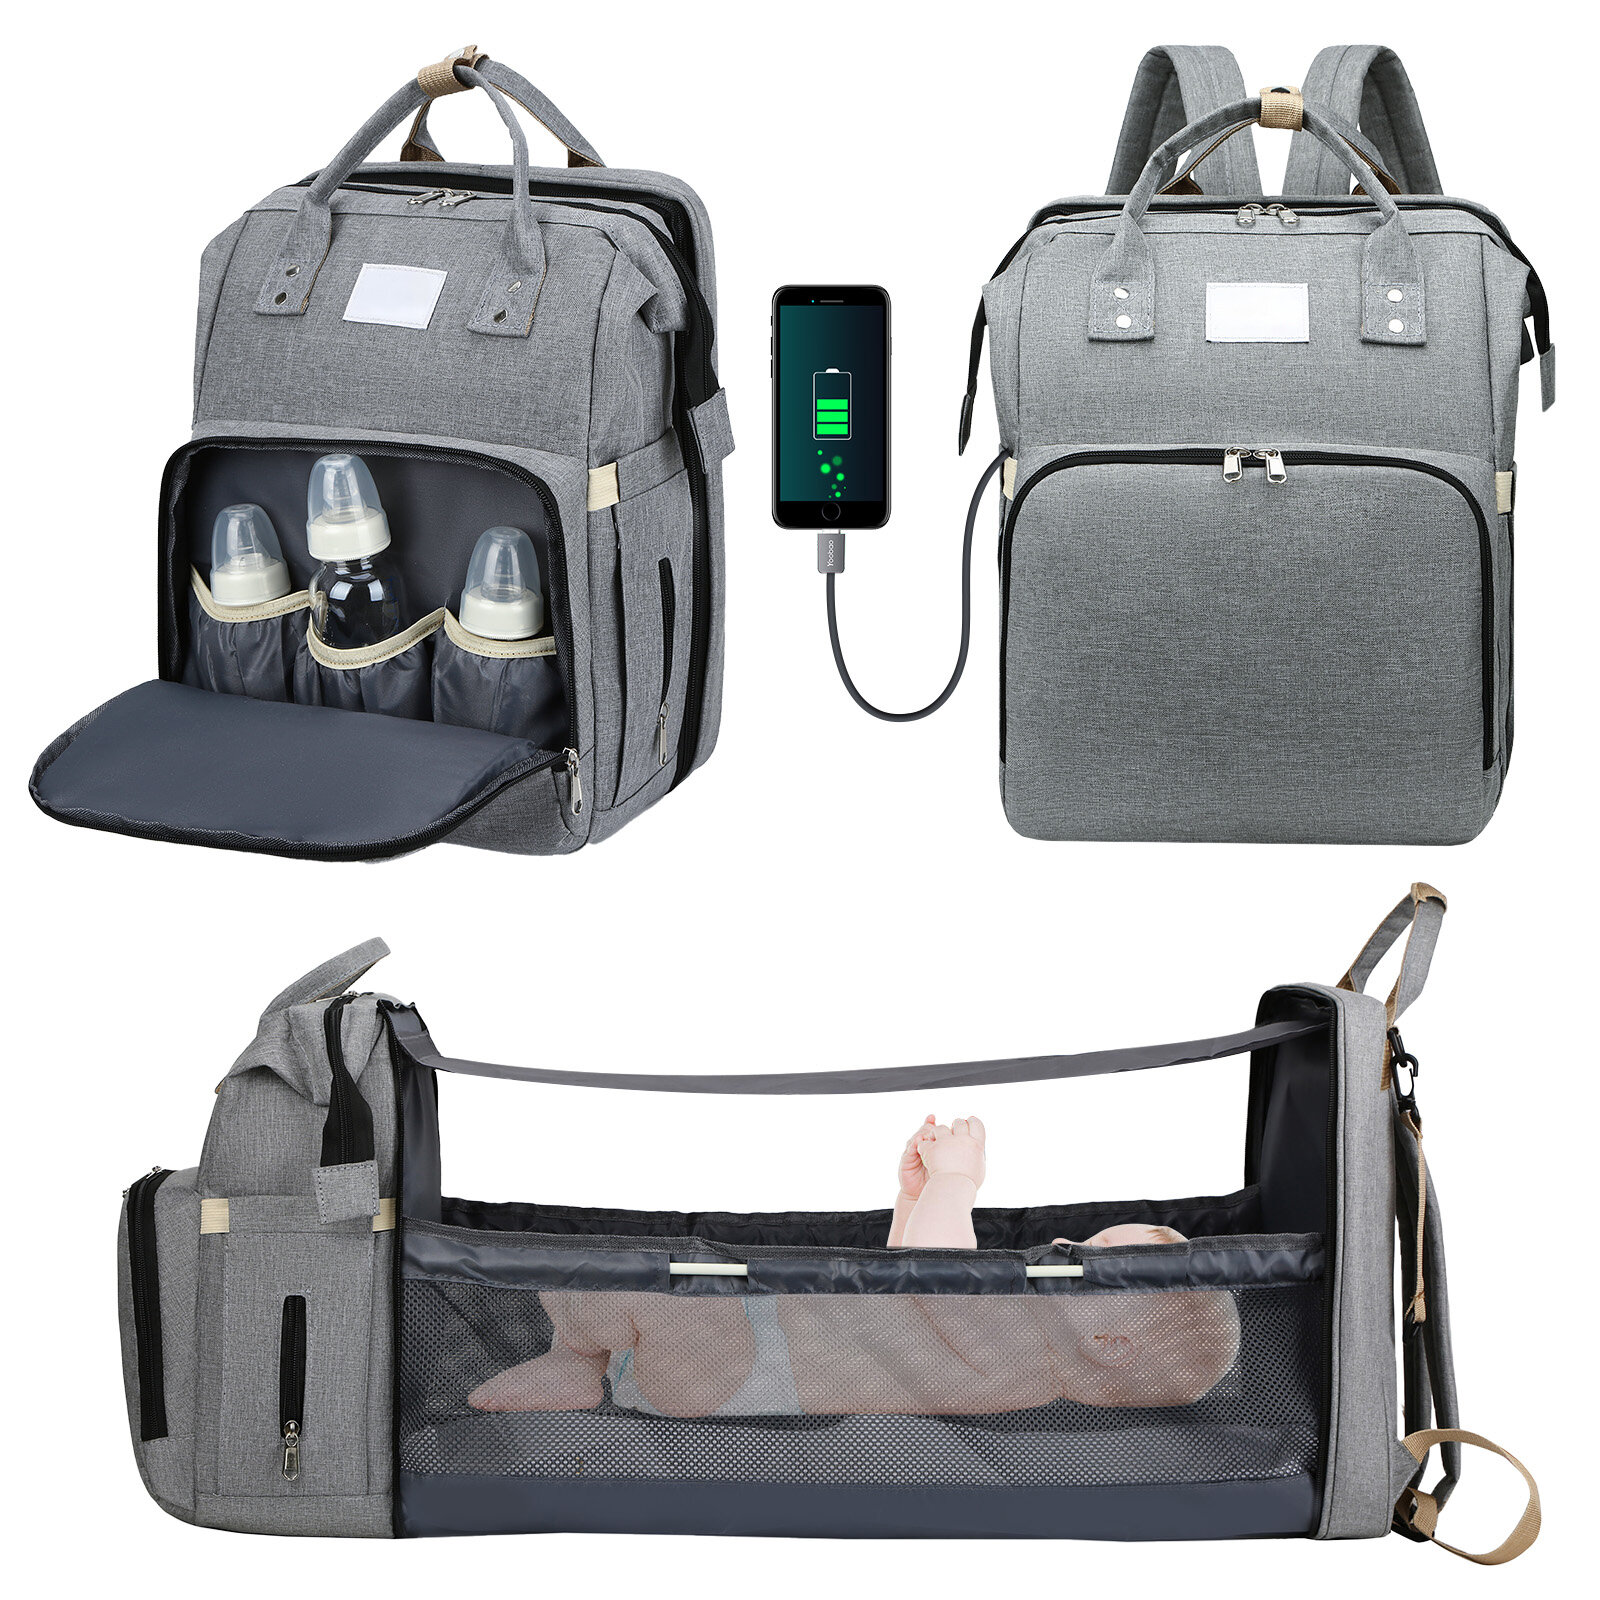 3-n-1 Diaper Bag Backpack with Changing Station and Travel Bed